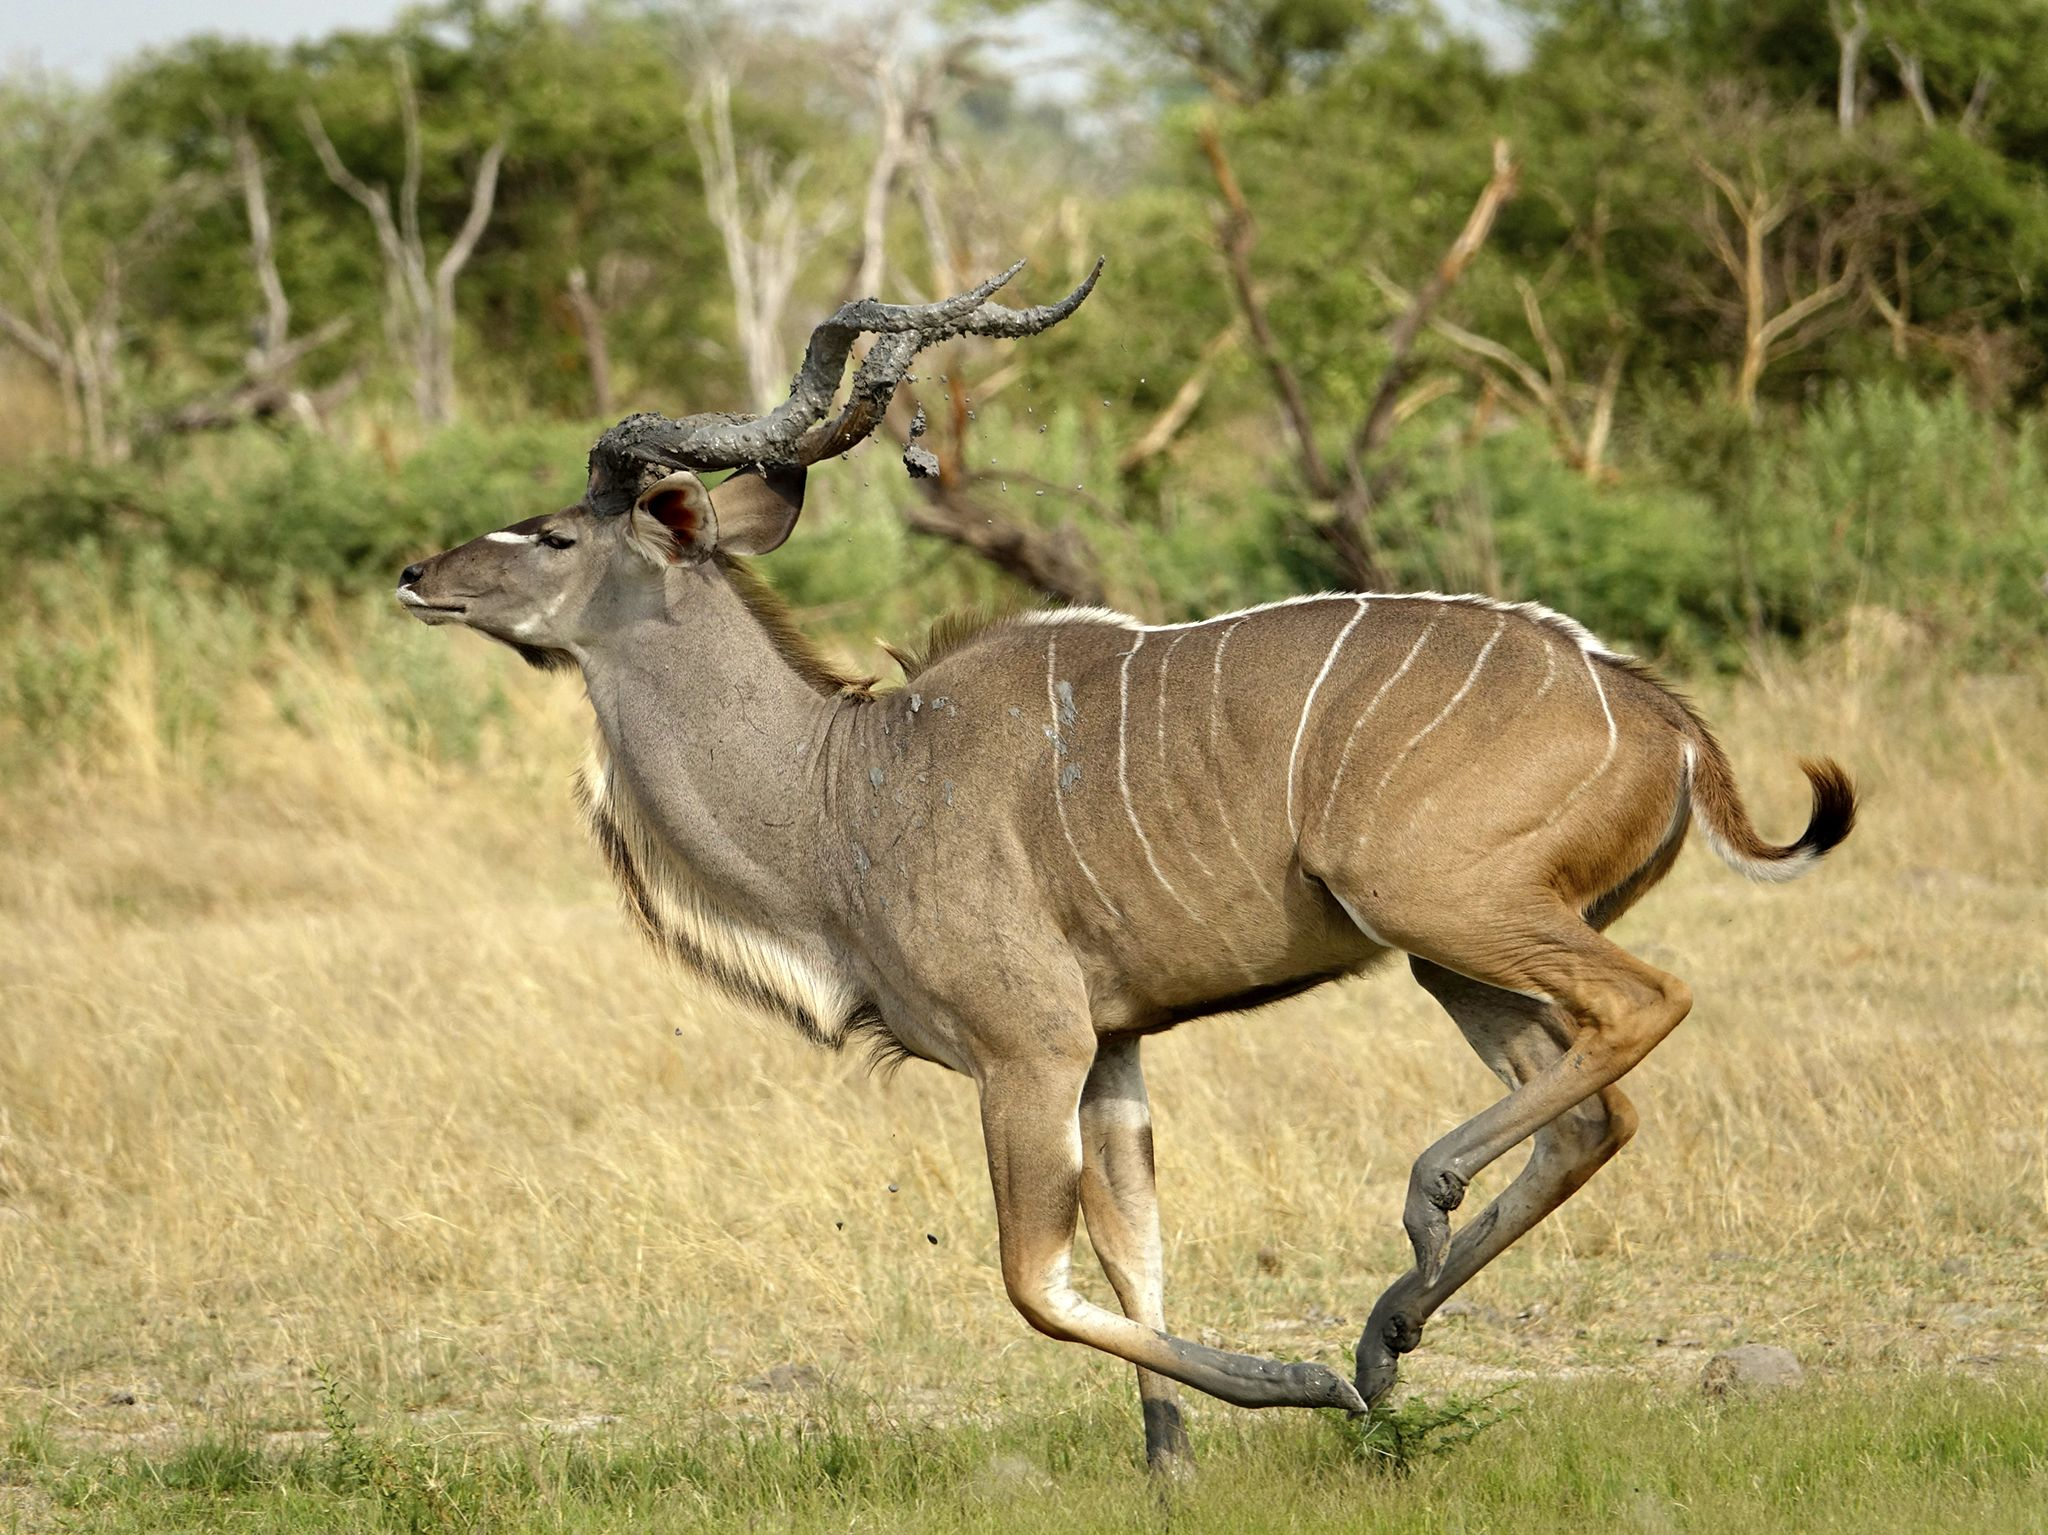 A kudu runs away after being startled at a water pool. This image is from Savage Kingdom. [Photo of the day - June 2019]